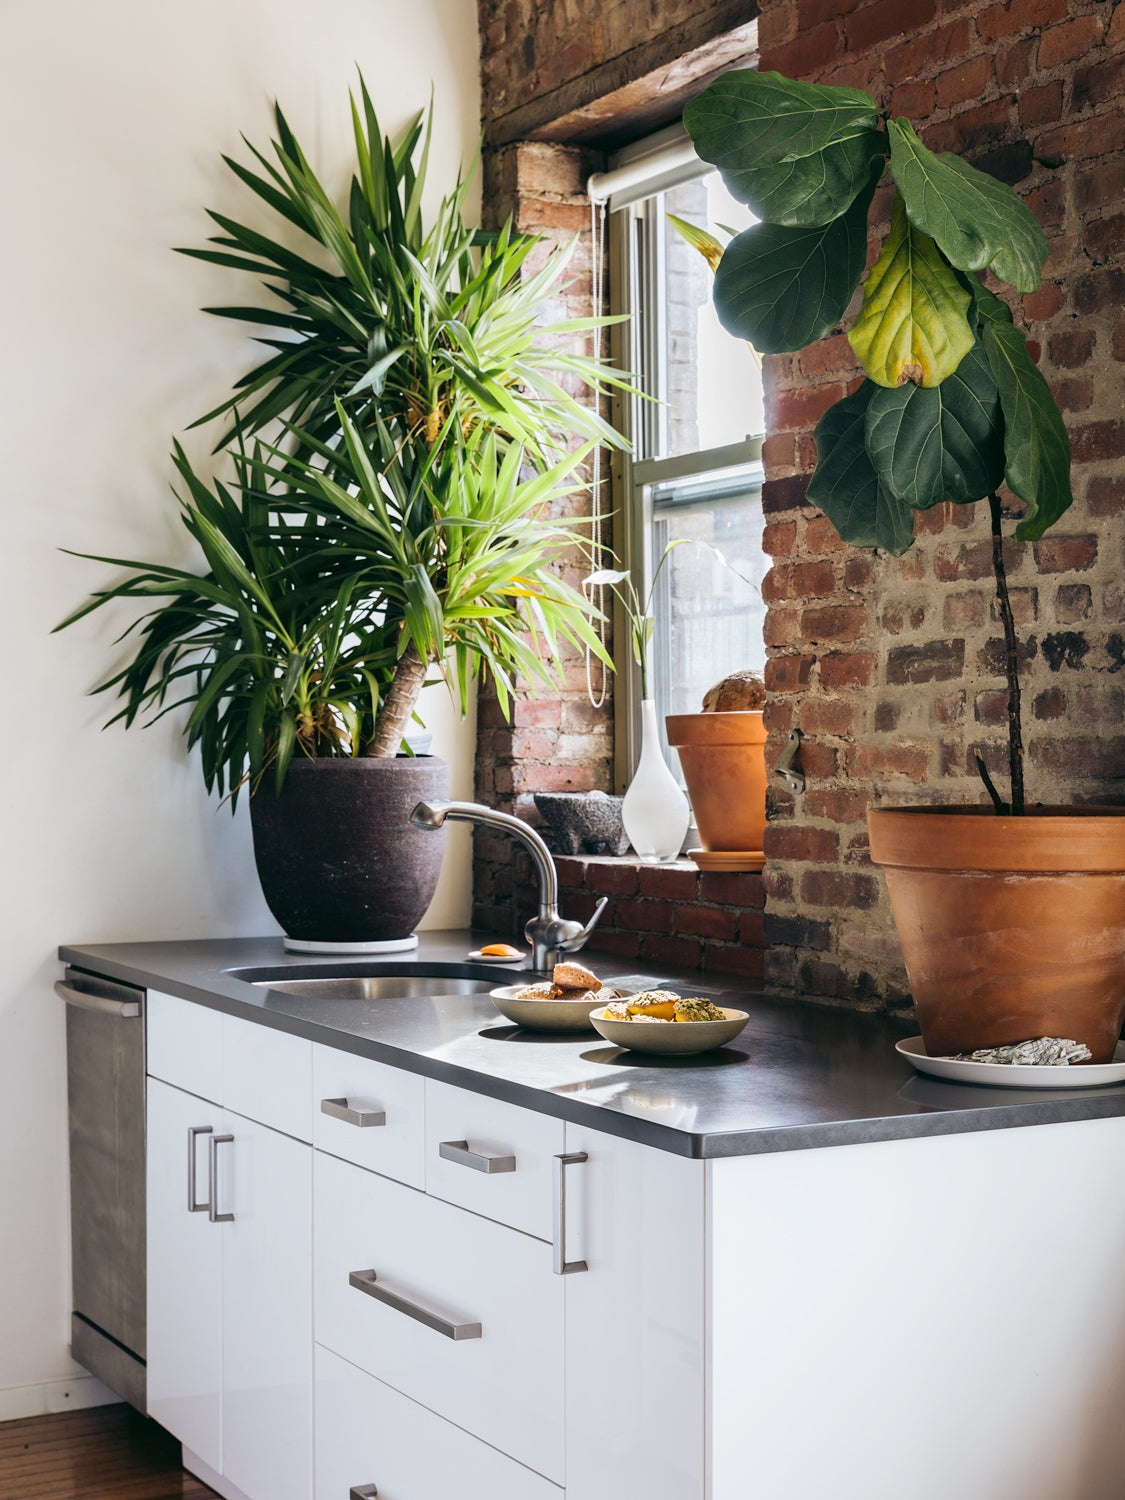 kitchen with plants on counter